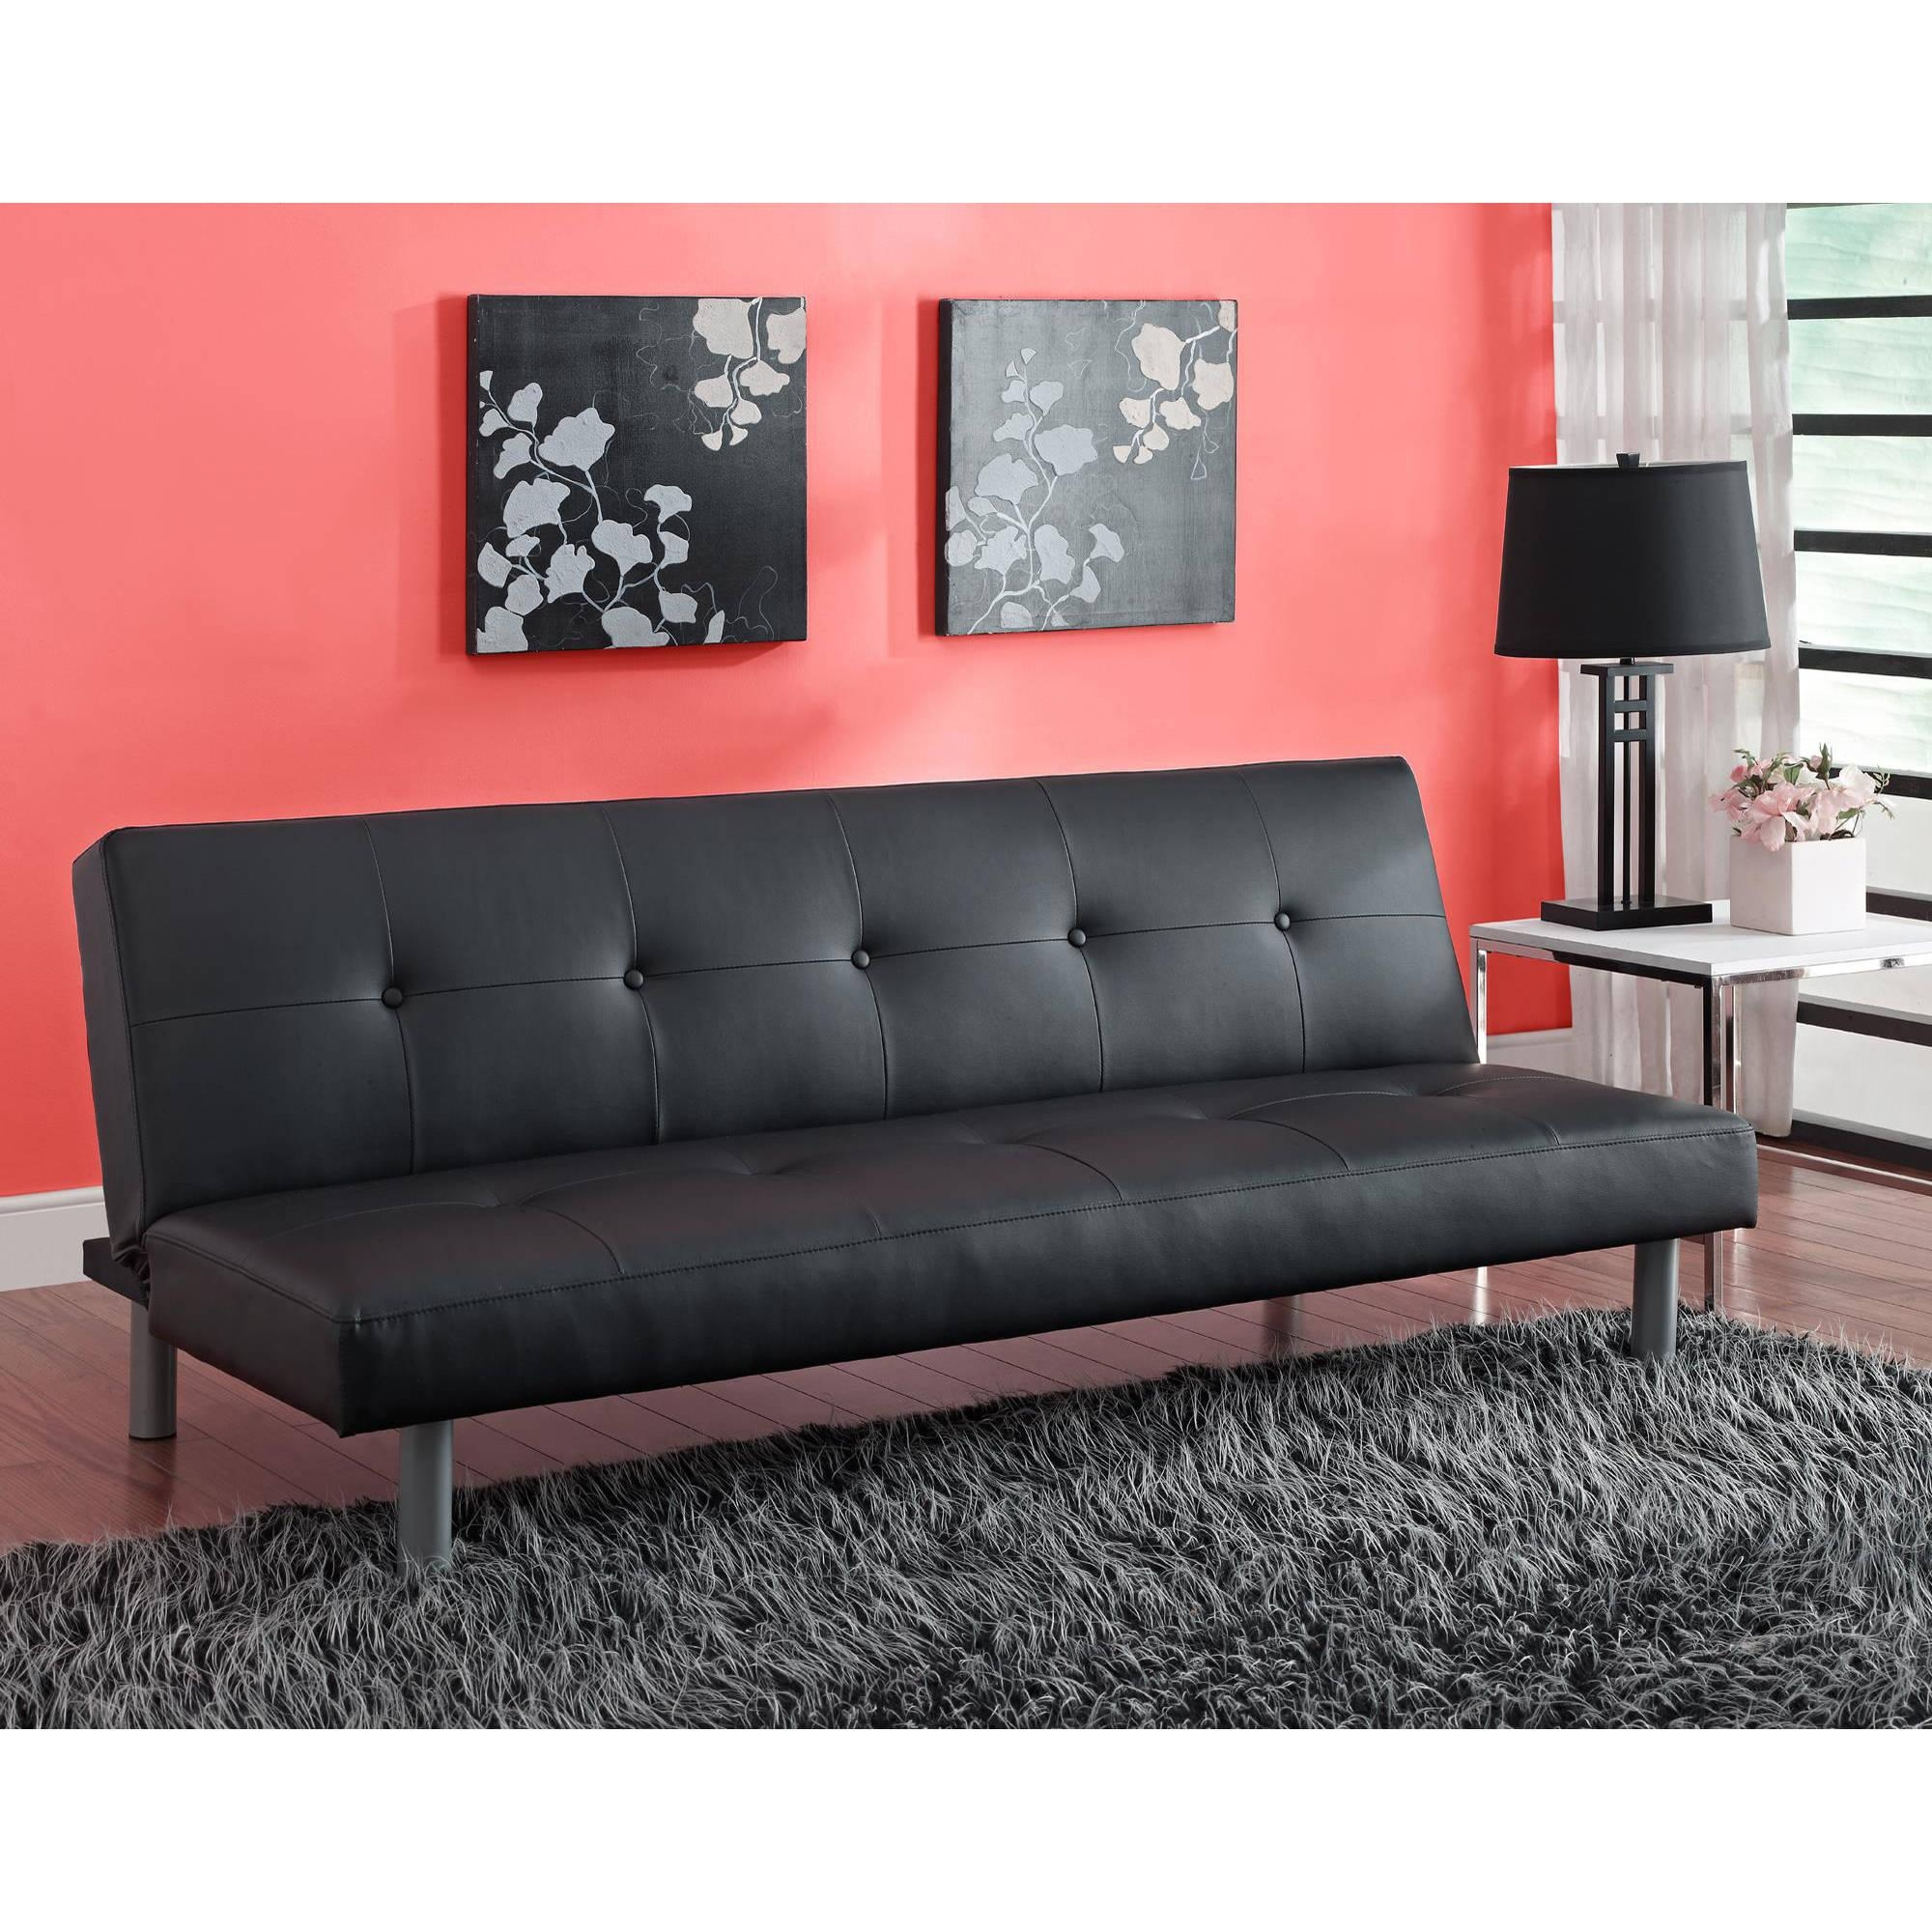 Furniture: Target Futons | Futon Beds Walmart | Couch Bed Walmart Pertaining To Target Couch Beds (Image 8 of 20)